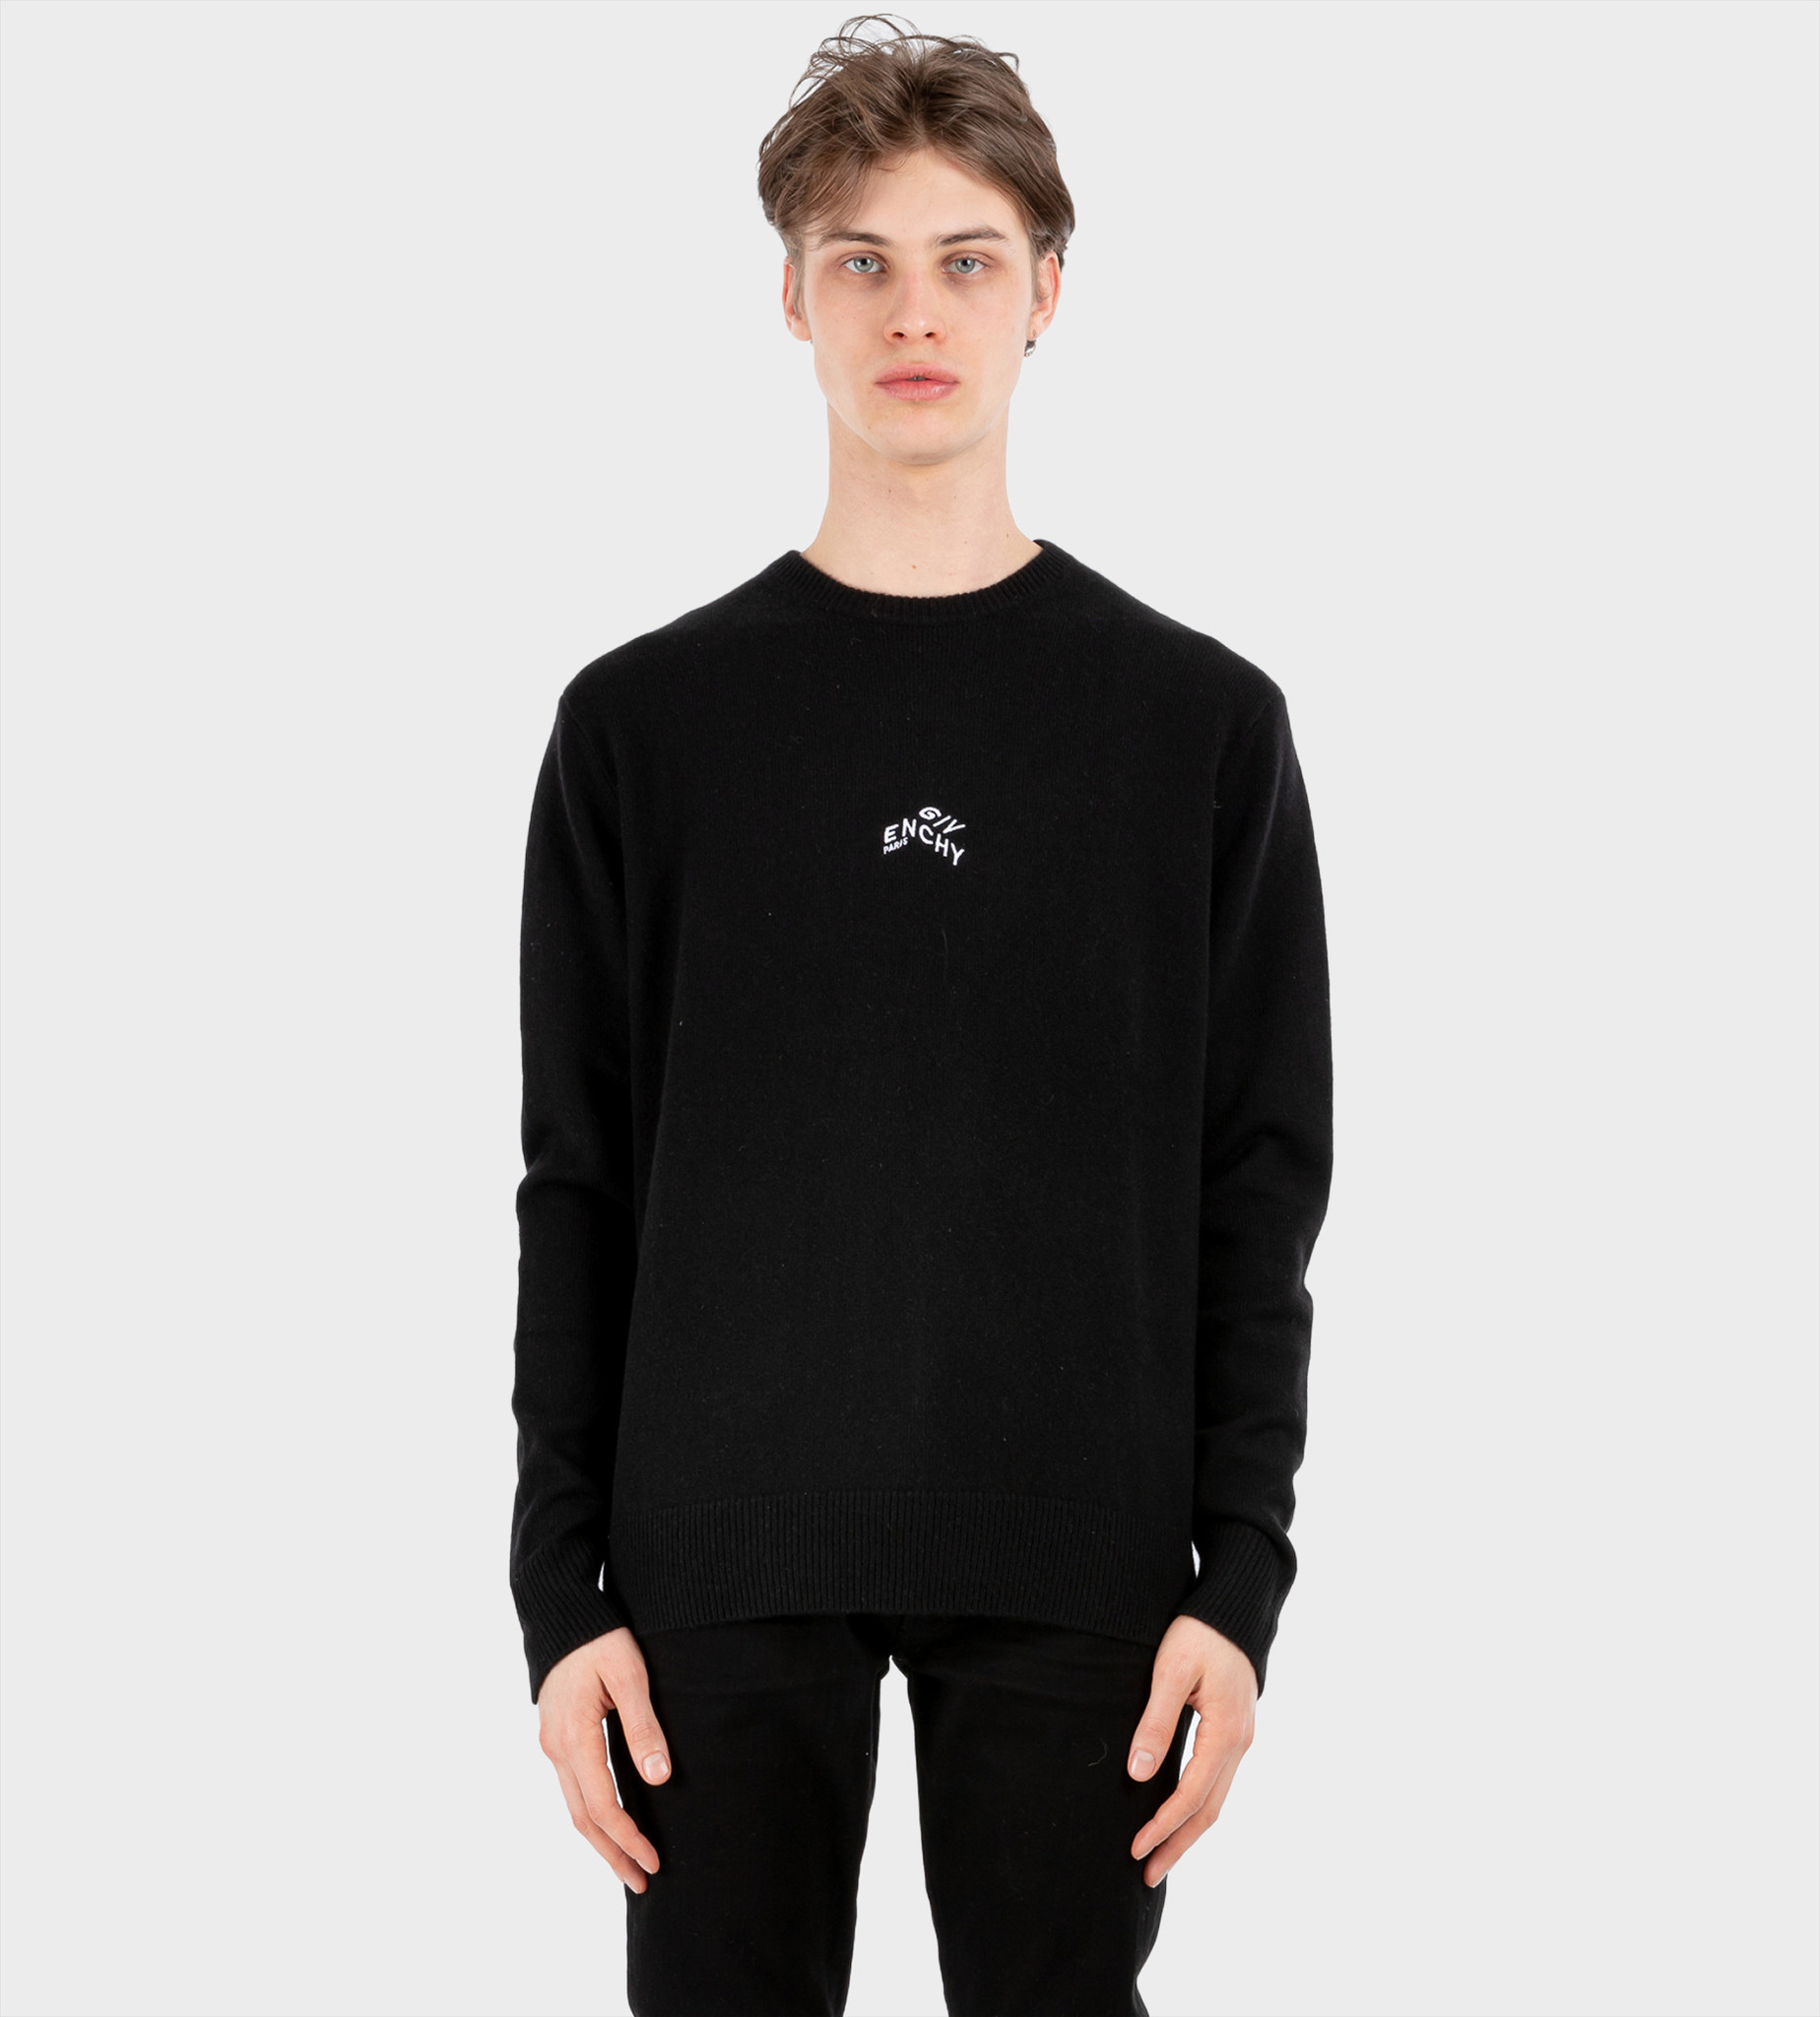 GIVENCHY Refracted Embroidered Sweater Black